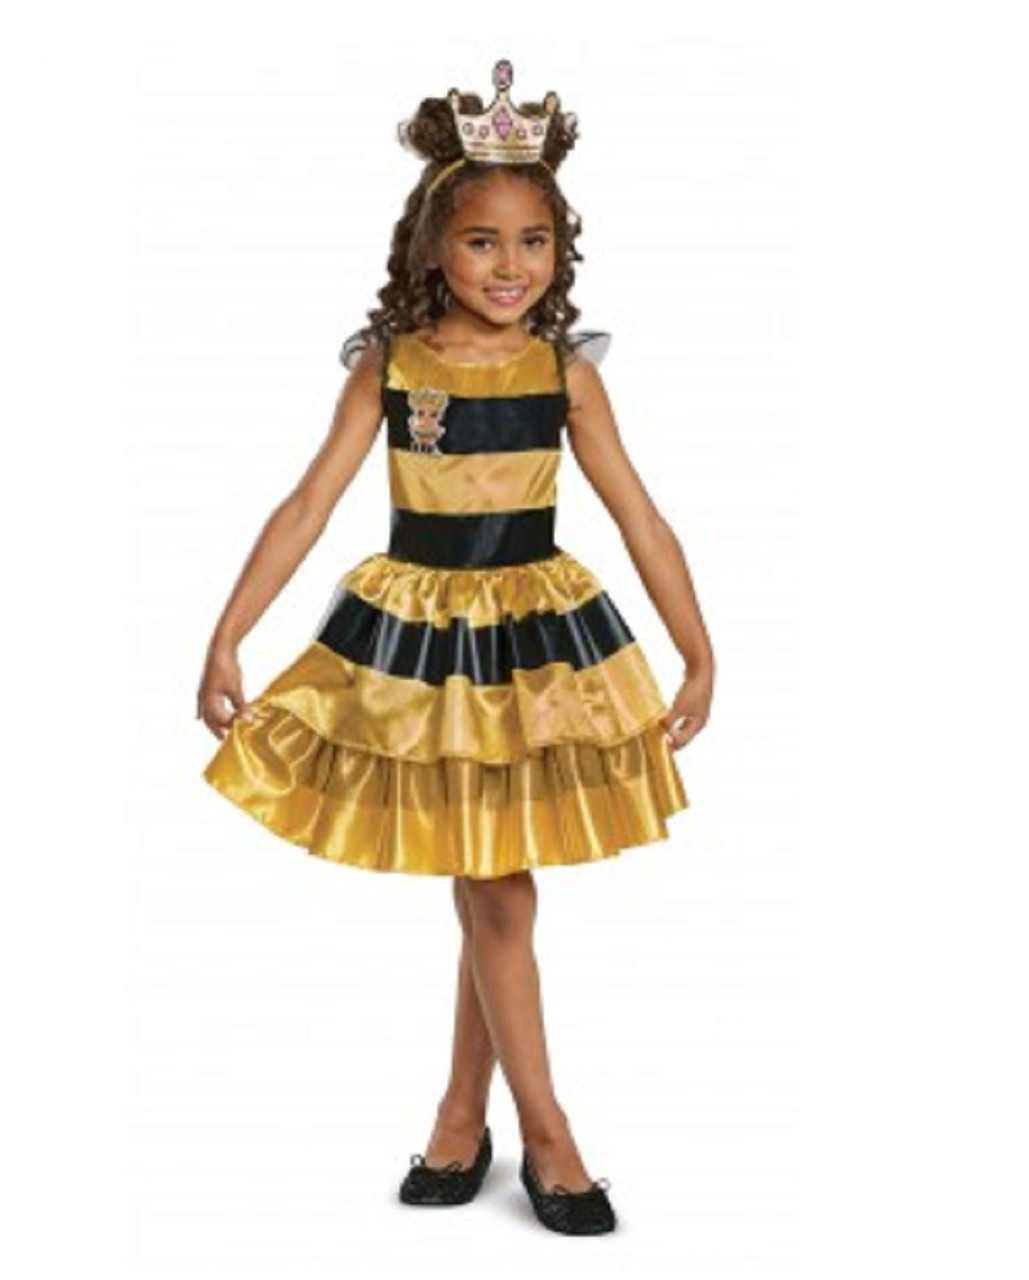 Costume - LOL Surprise - Queen Bee Classic - Size Small